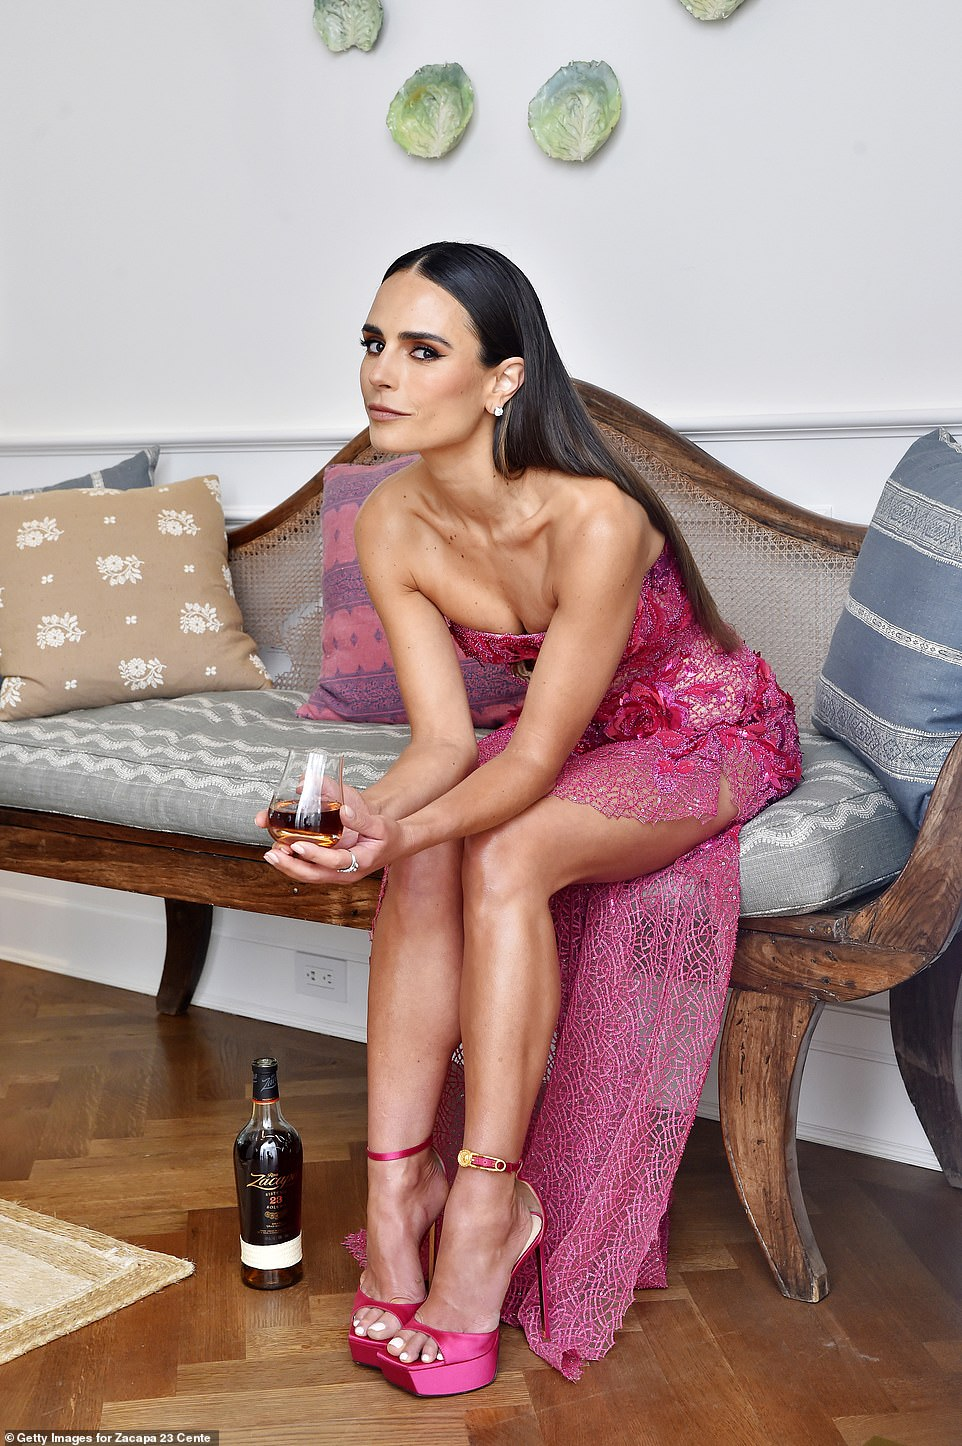 Shining bright: In intimate snaps of her getting ready she posed with rum